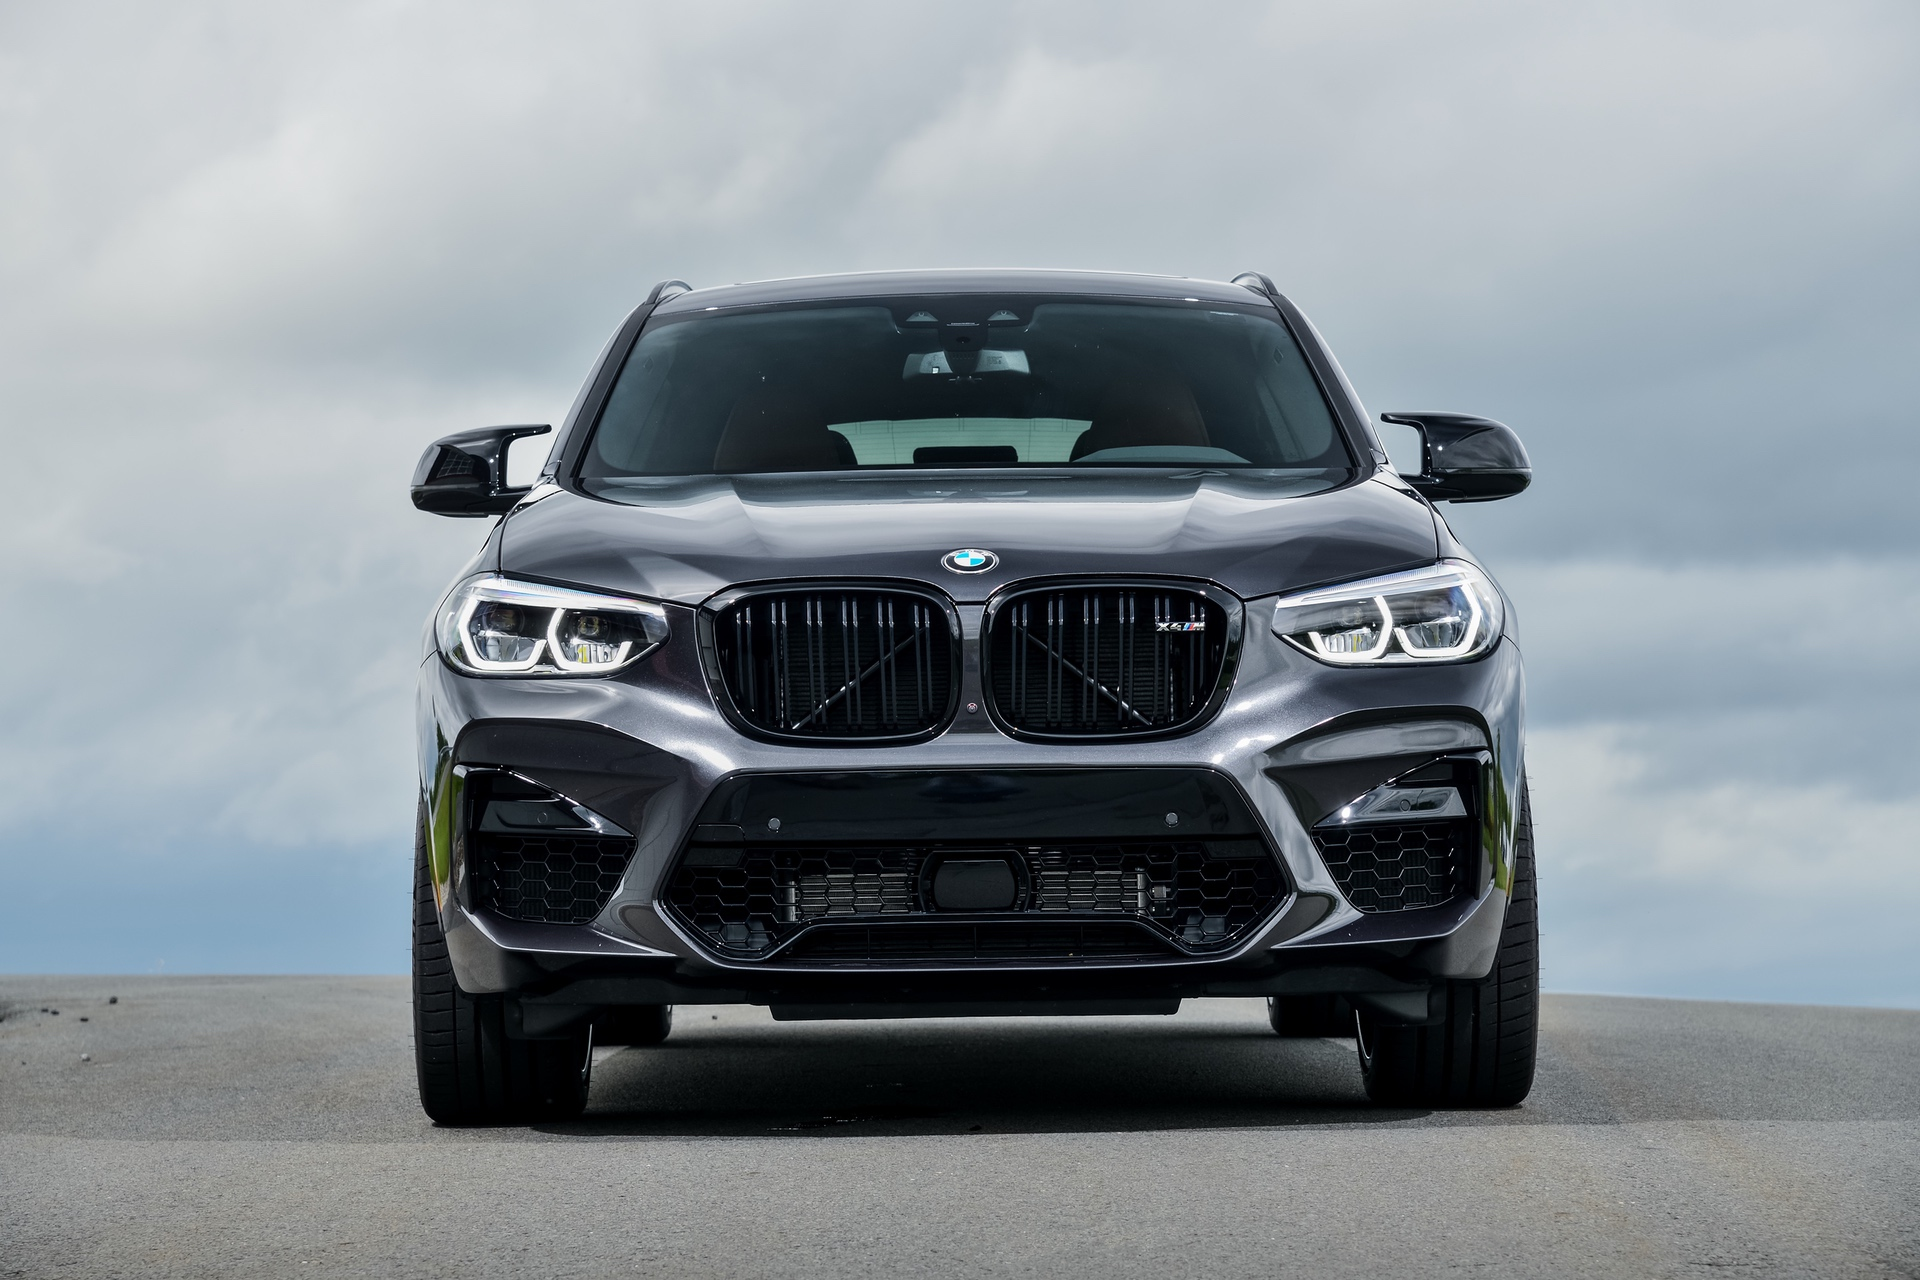 2020 Bmw X3 M And X4 M New Videos